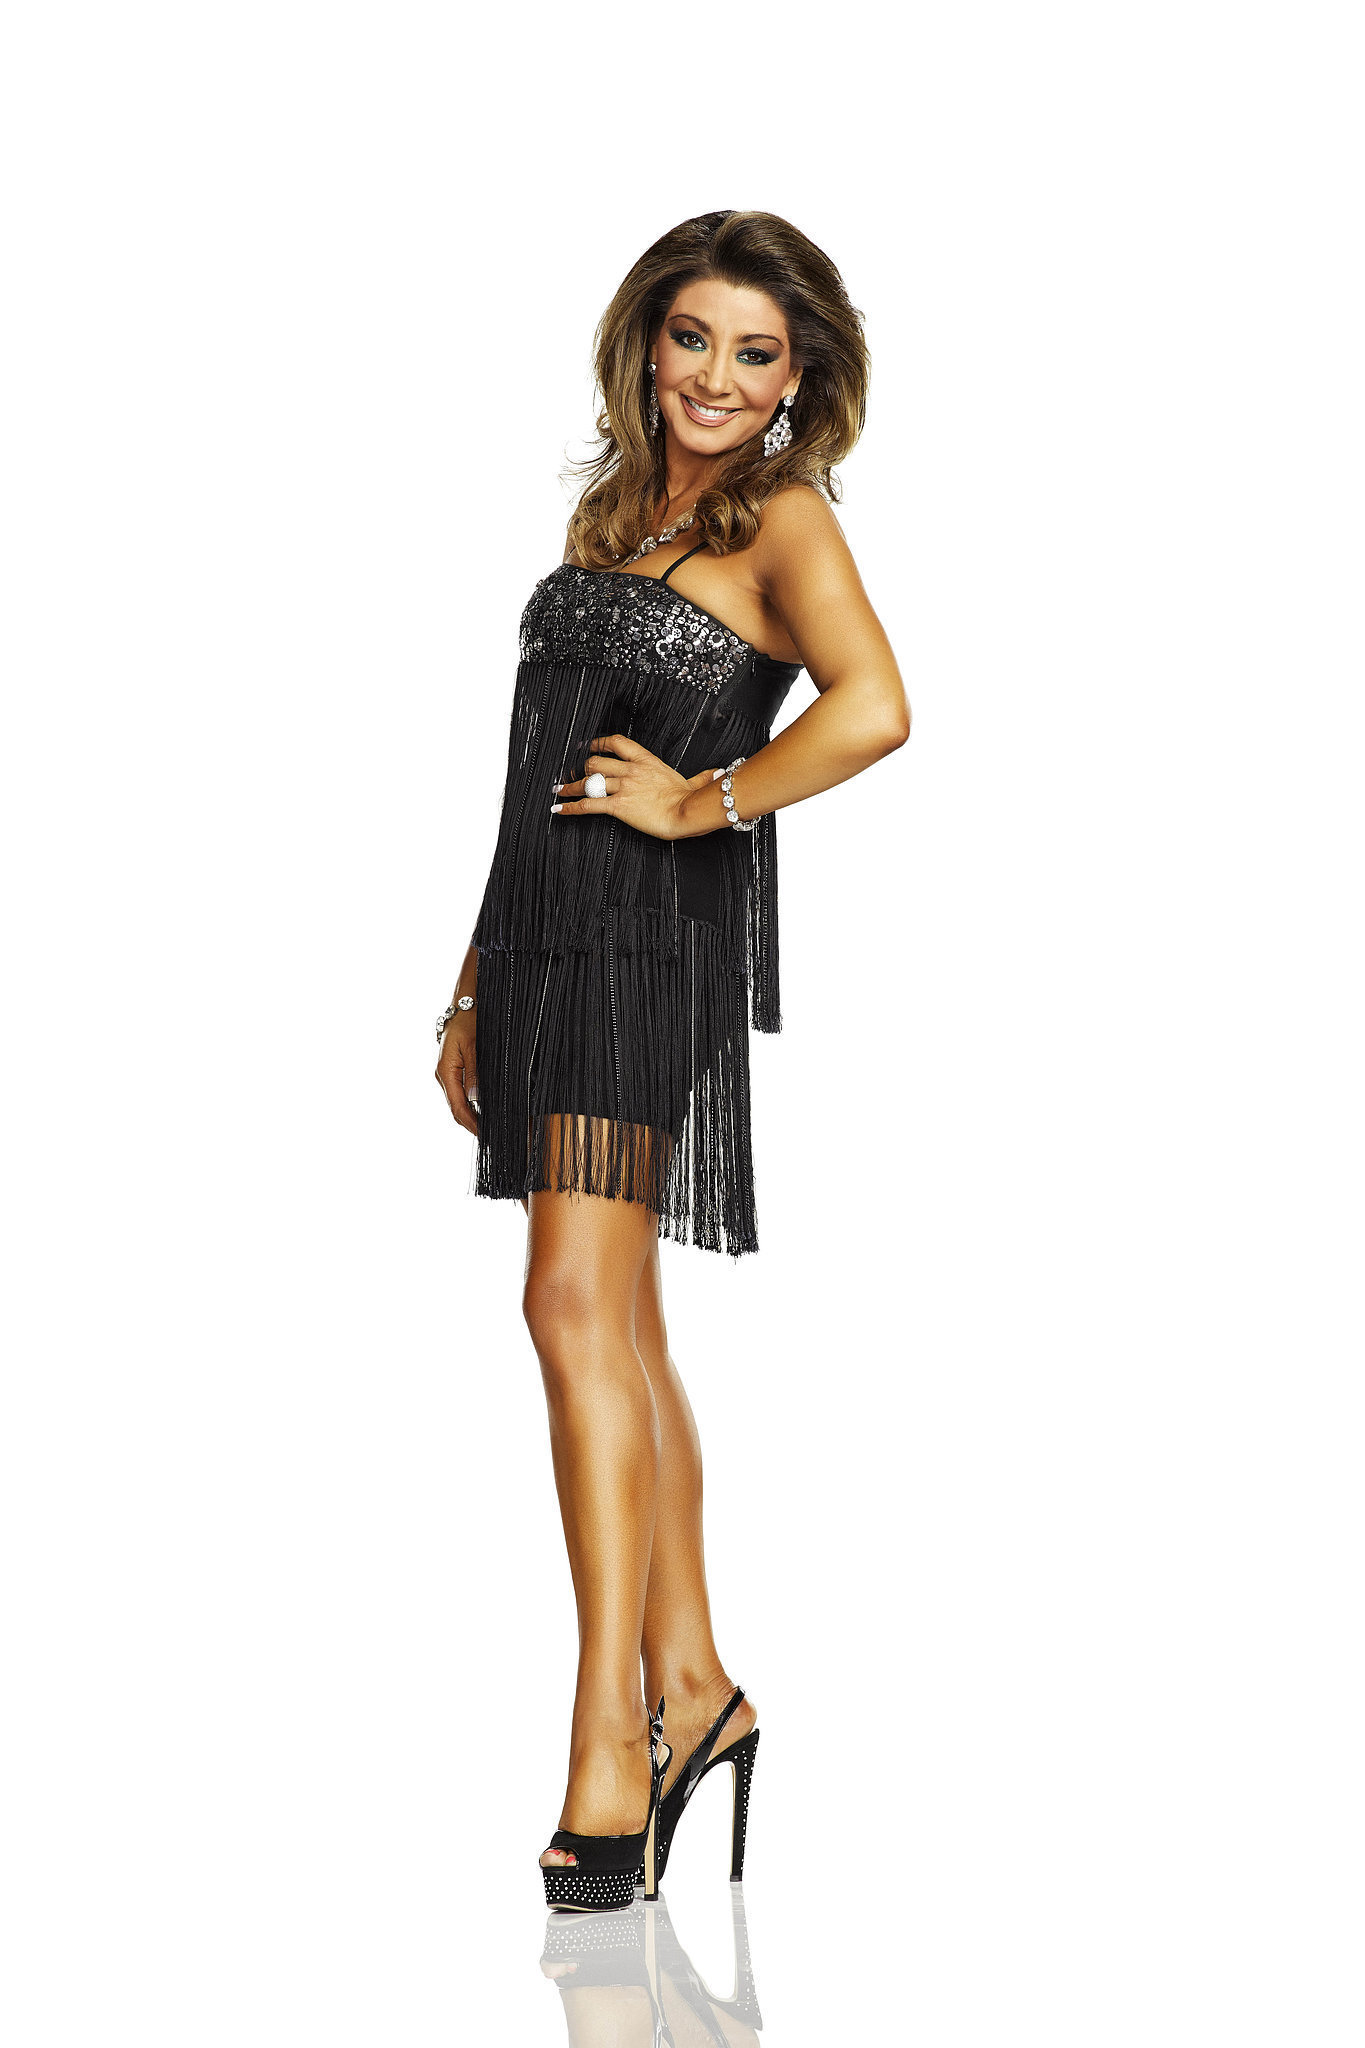 Celebrity Gina Liano nude (87 photos), Topless, Hot, Twitter, braless 2019